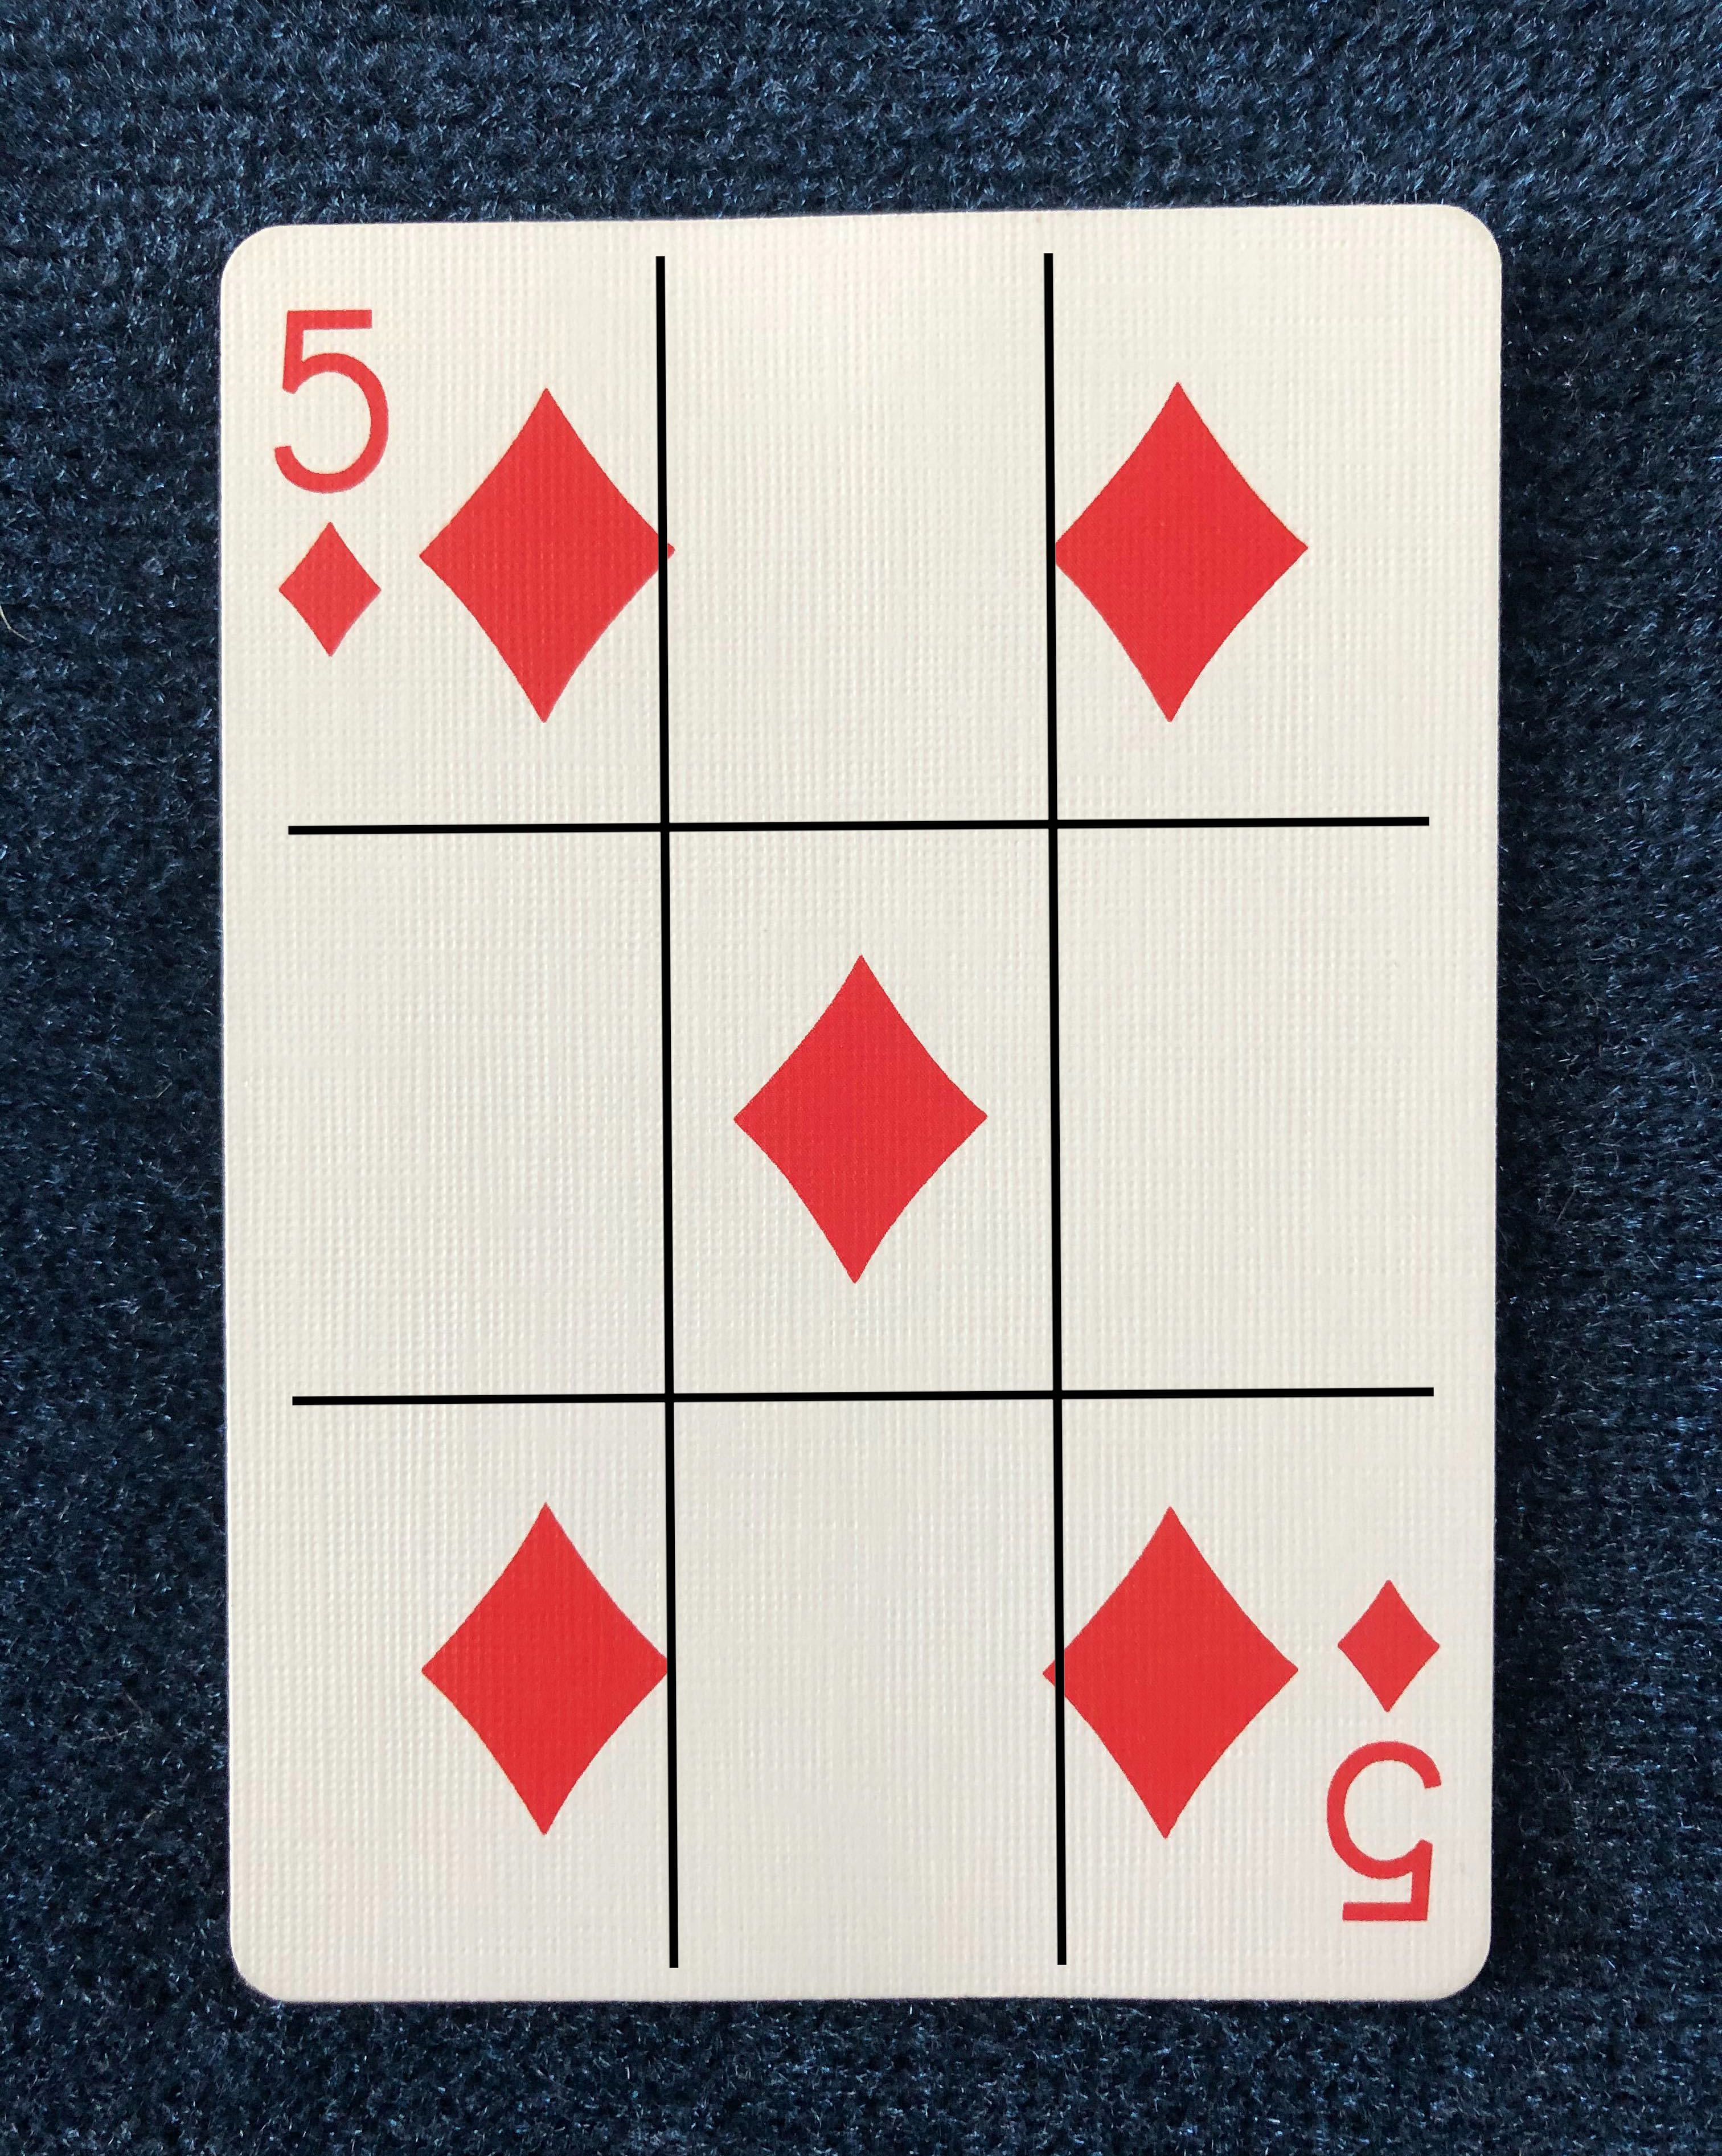 5 of Diamonds from The Dapper Deck Playing Cards from Vanishing Inc. is used for an easy mind reading card trick